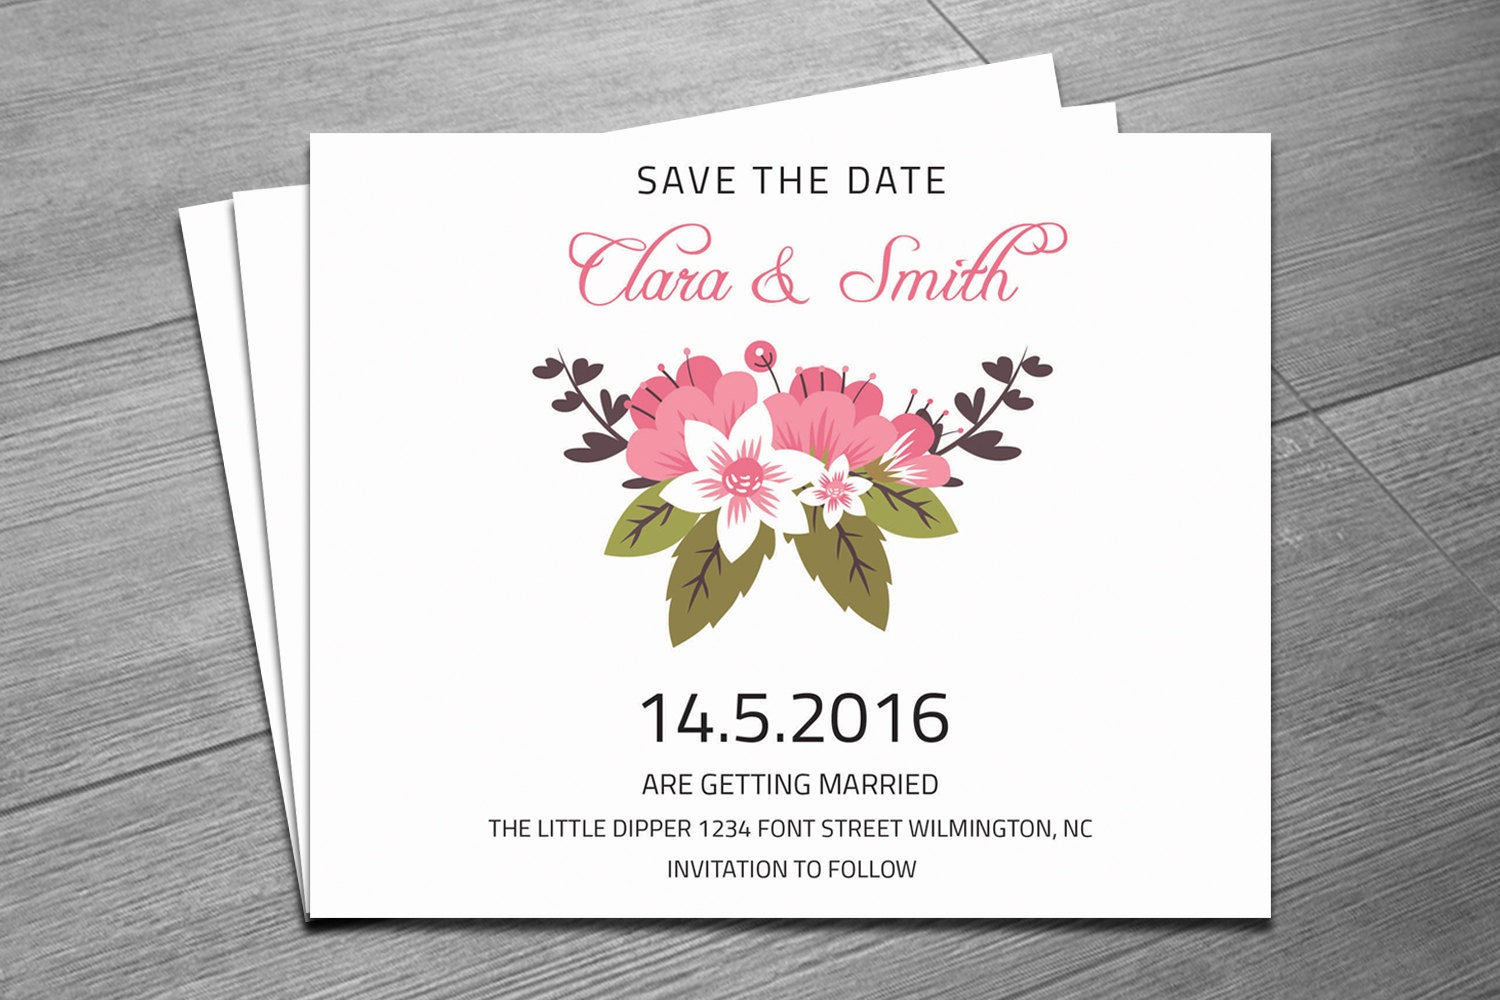 save the date invitation template by weddingtemplatestock on etsy. Black Bedroom Furniture Sets. Home Design Ideas